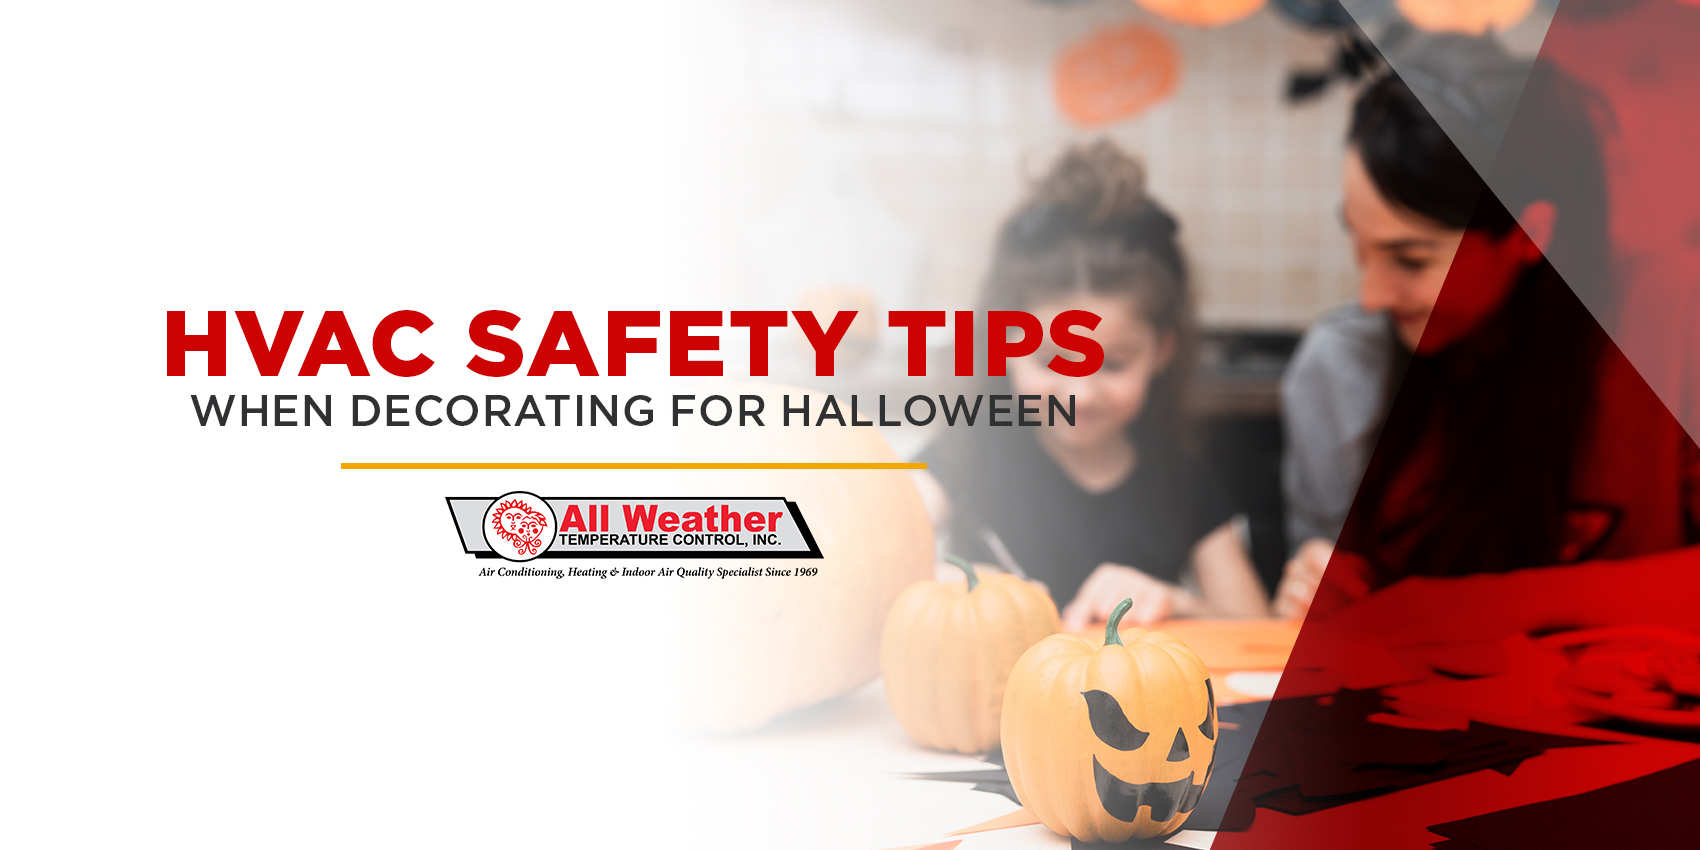 HVAC Safety Tips When Decorating for Halloween